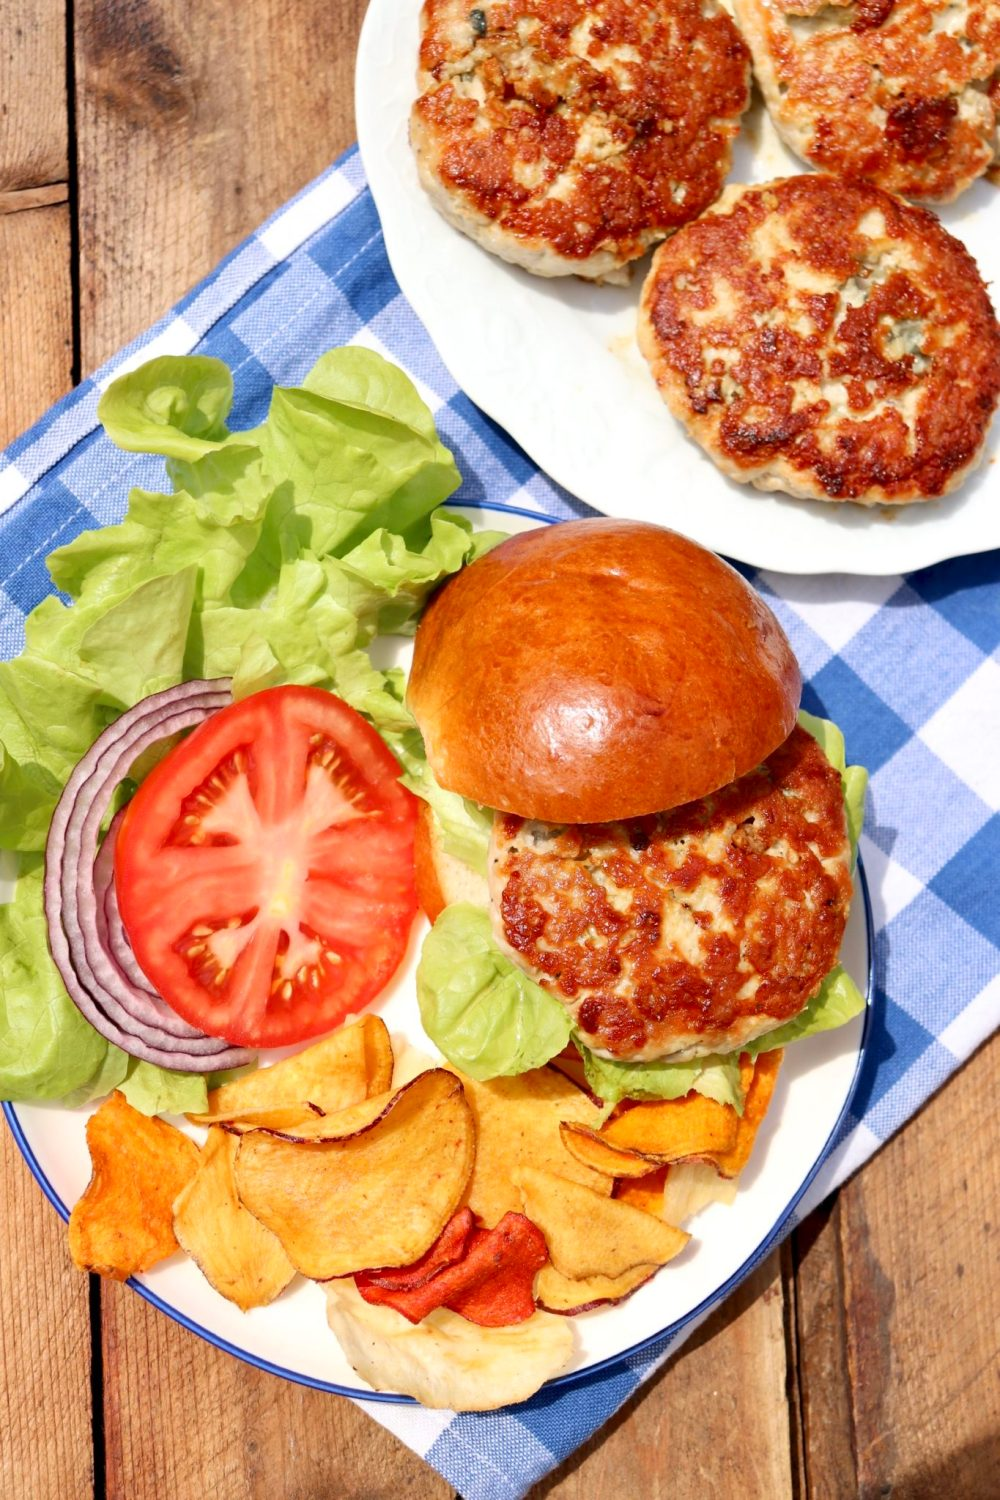 Blue Cheese Turkey Burgers-3 simple ingredients make THE BESTturkey burgers ever...tender, flavorful and not the least bit dry. Easy to cook on the grill or stovetop.